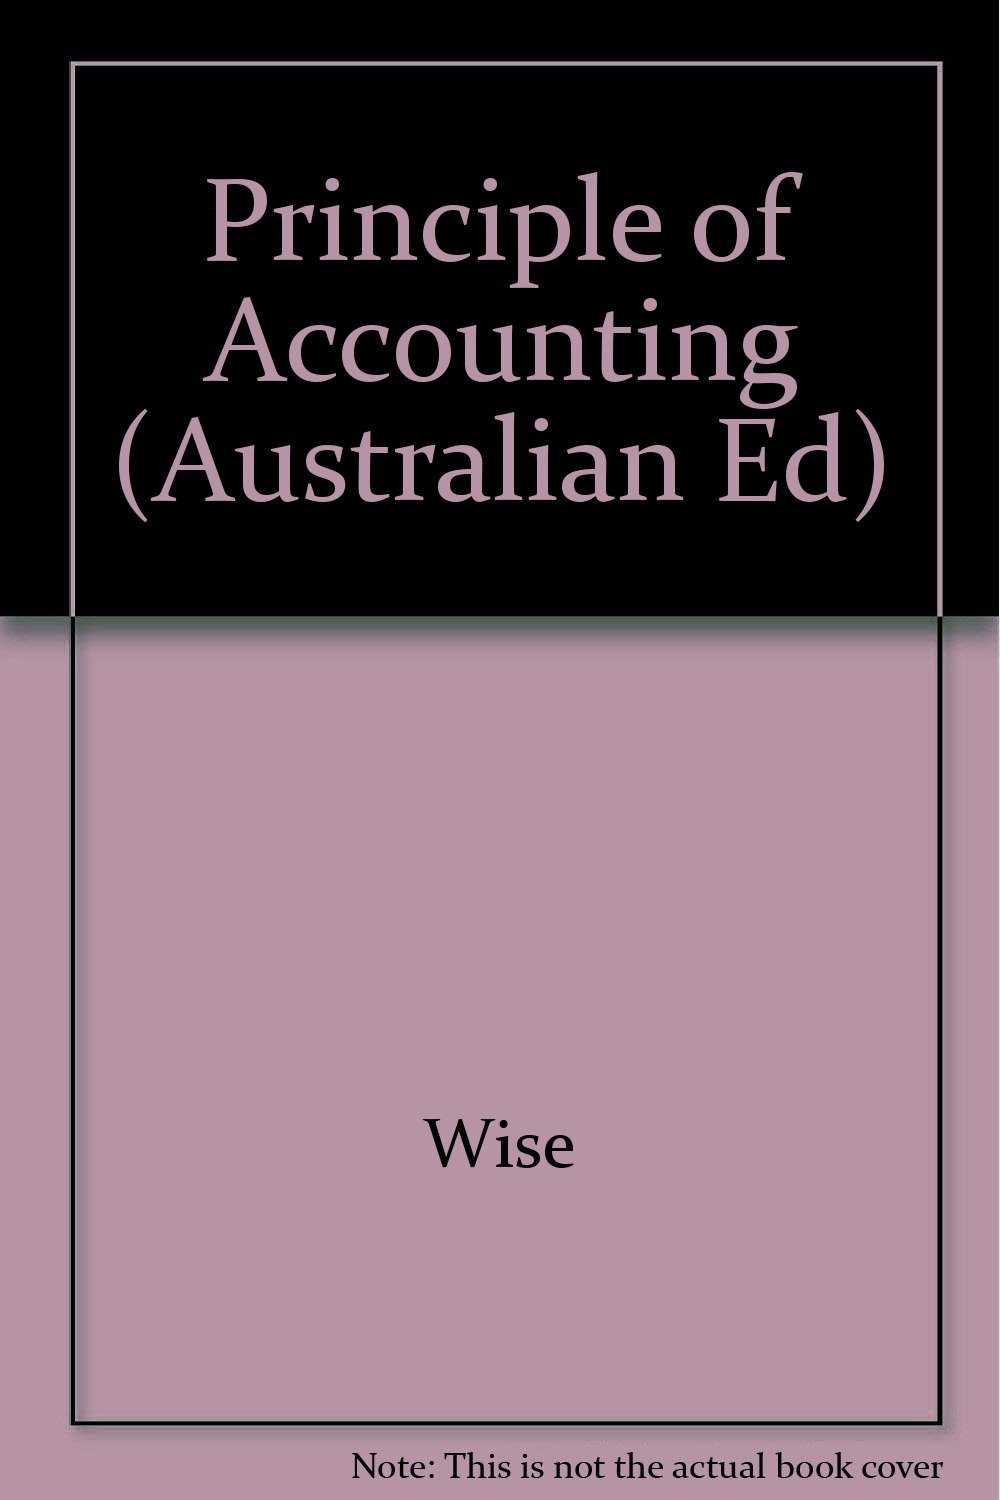 Principle of Accounting (Australian Ed)